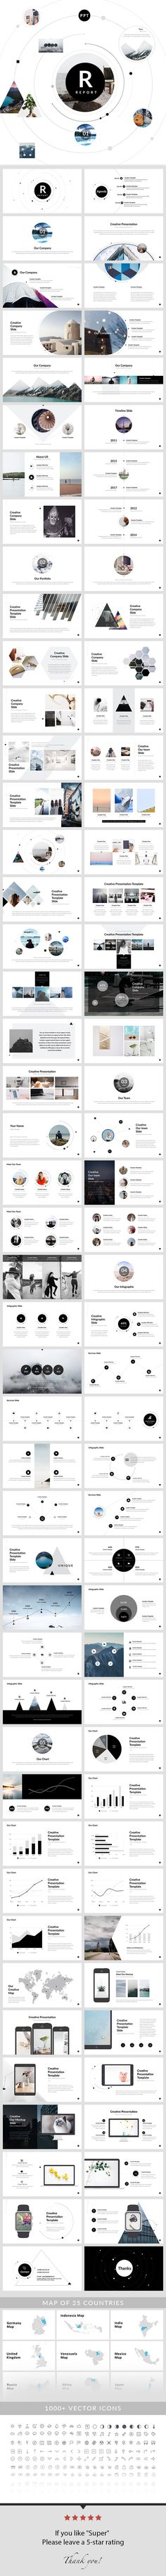 Pinterest • Le catalogue d'idées https://fr.pinterest.com/pin/264093965632176791/